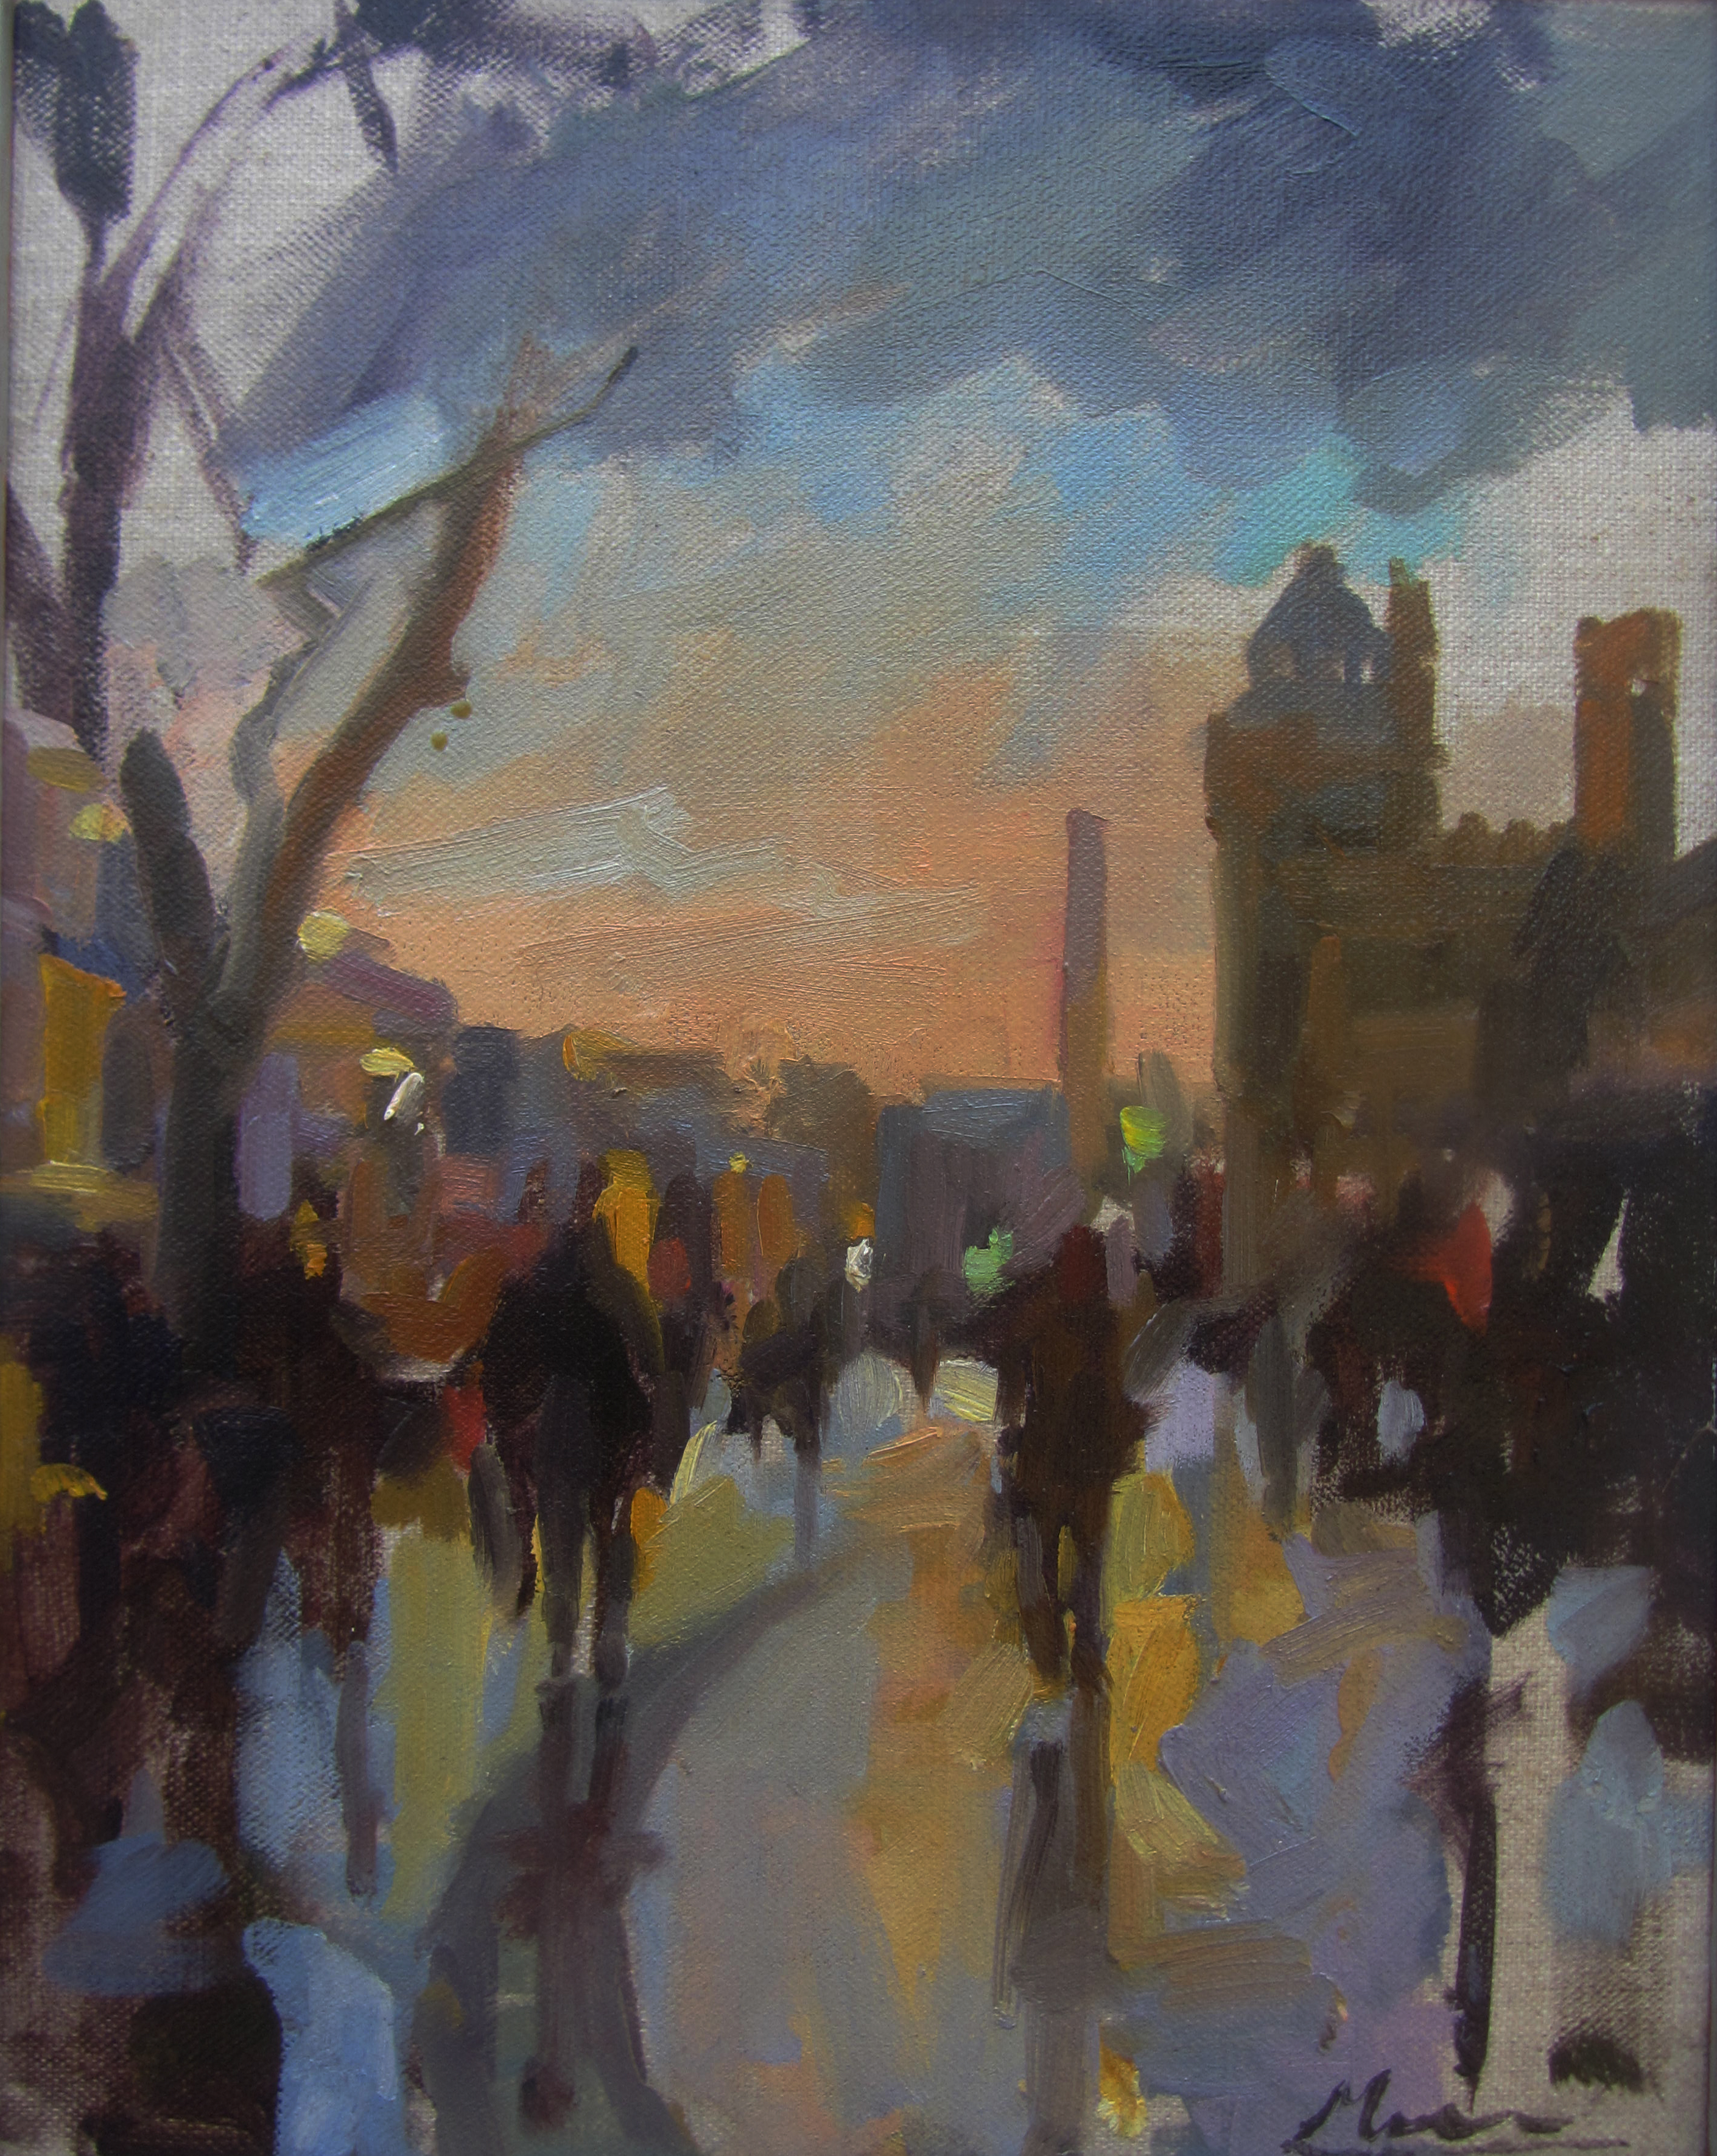 Rainy day in Cardiff. 24x30 oil on canvas.